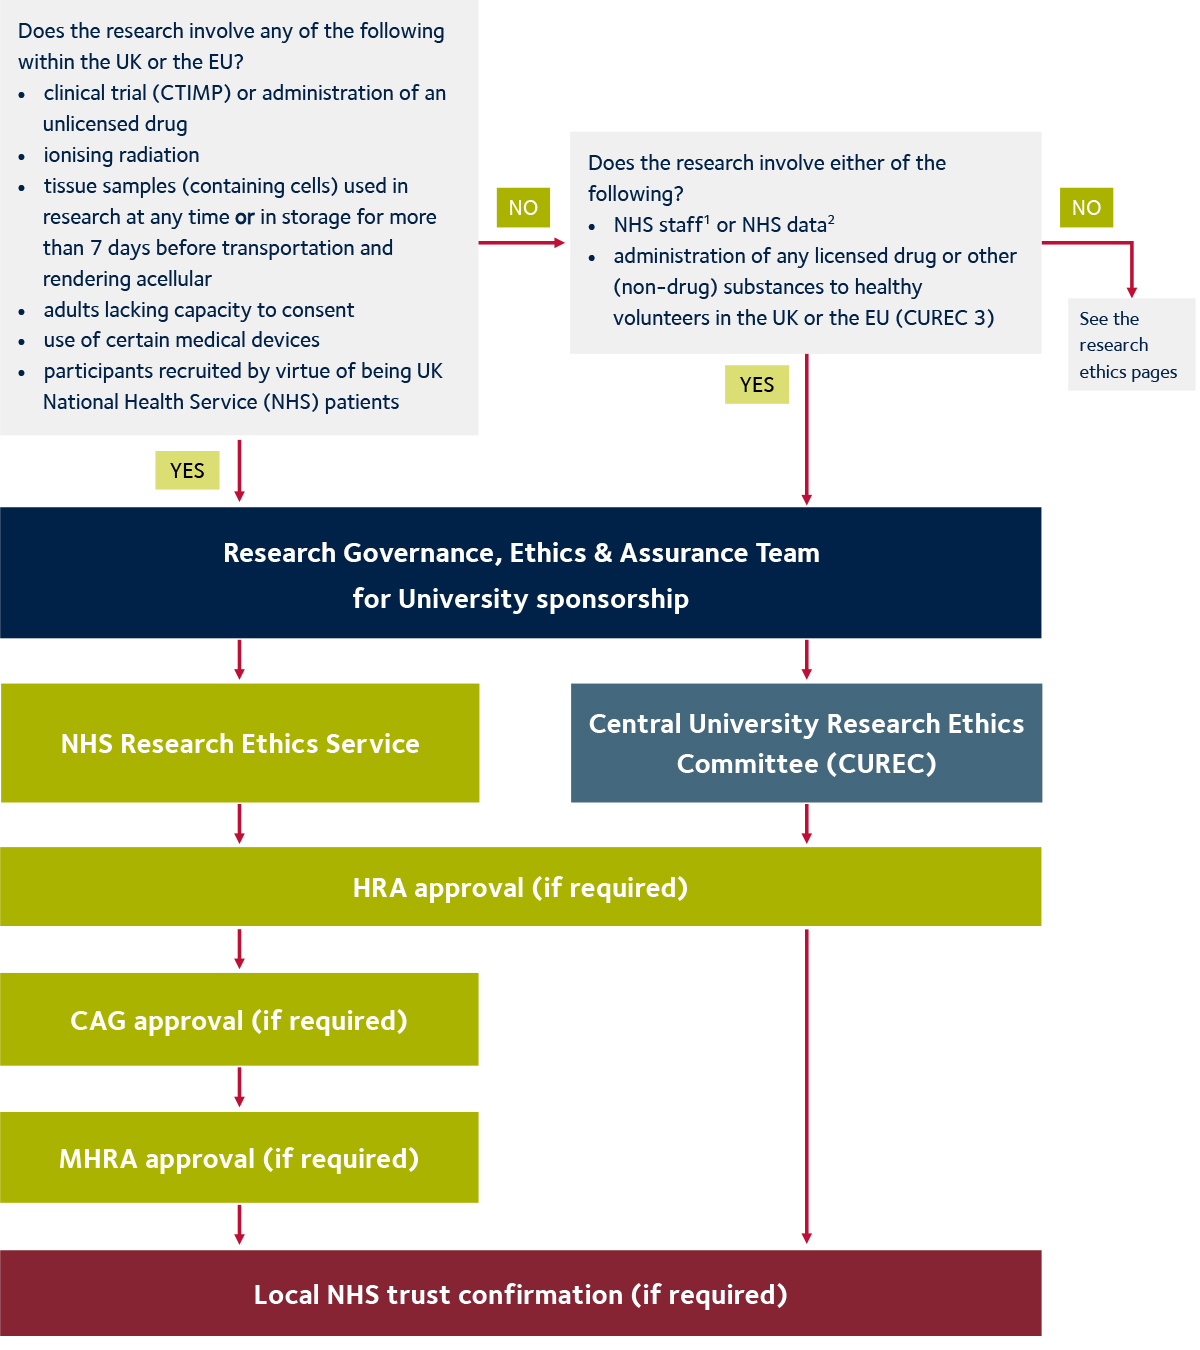 Ethics approval process chart